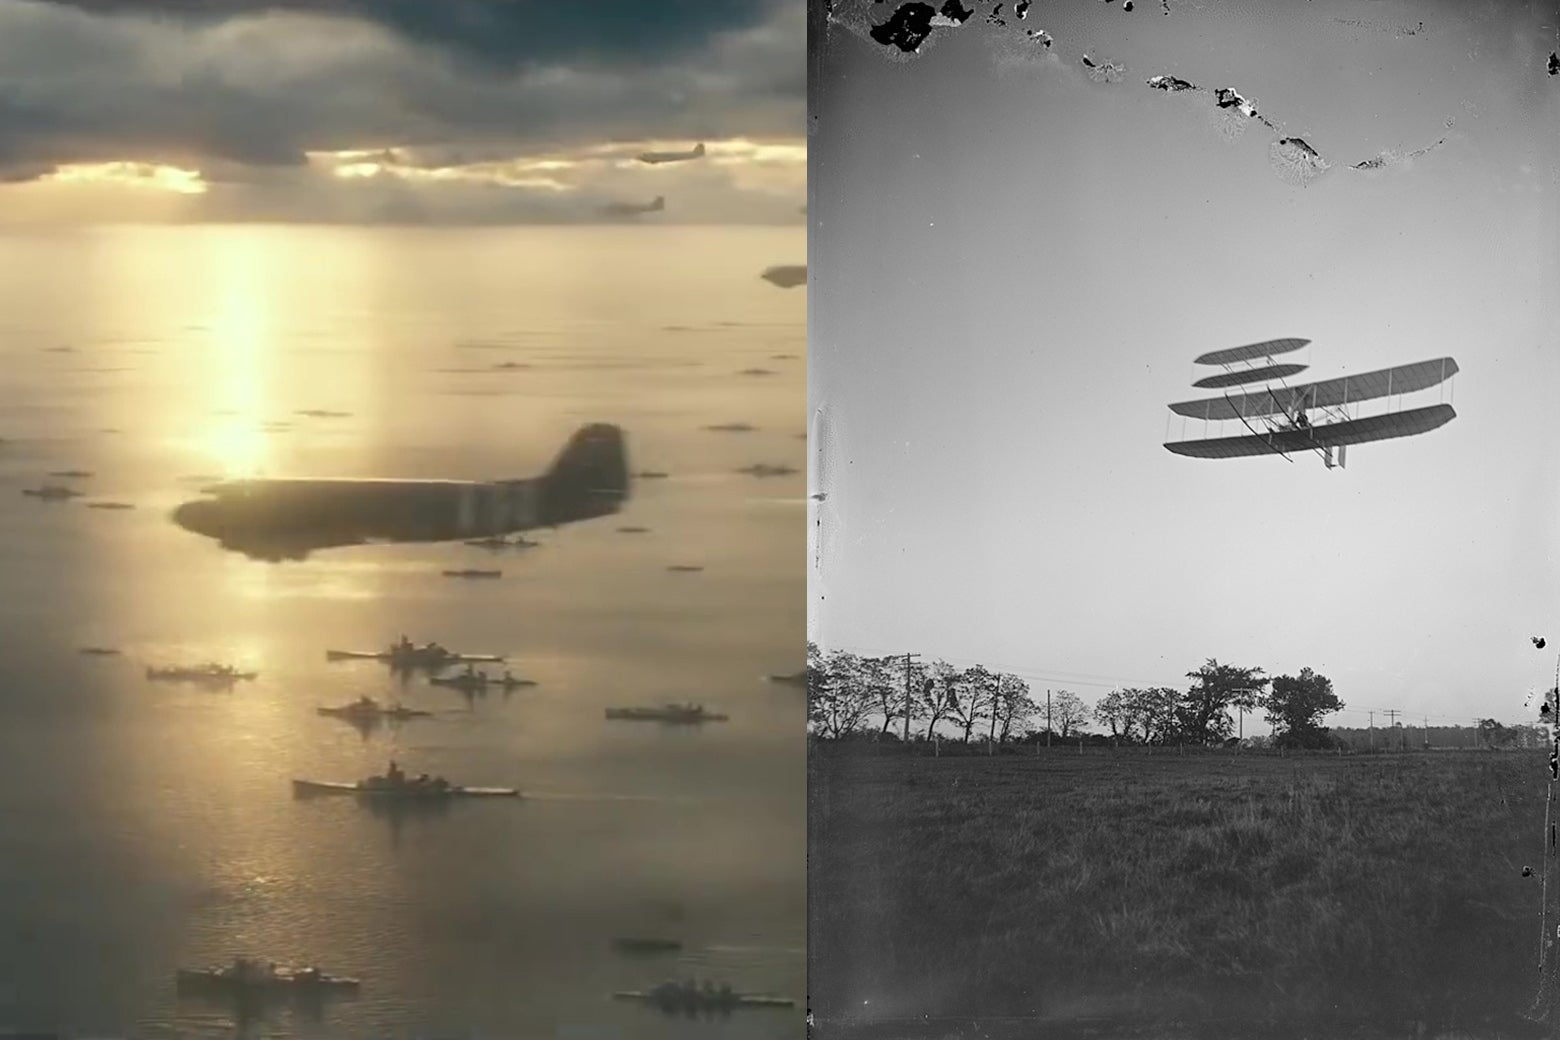 A still from Overlord showing an airplane, paired with an image of the Wright Brothers' plane.